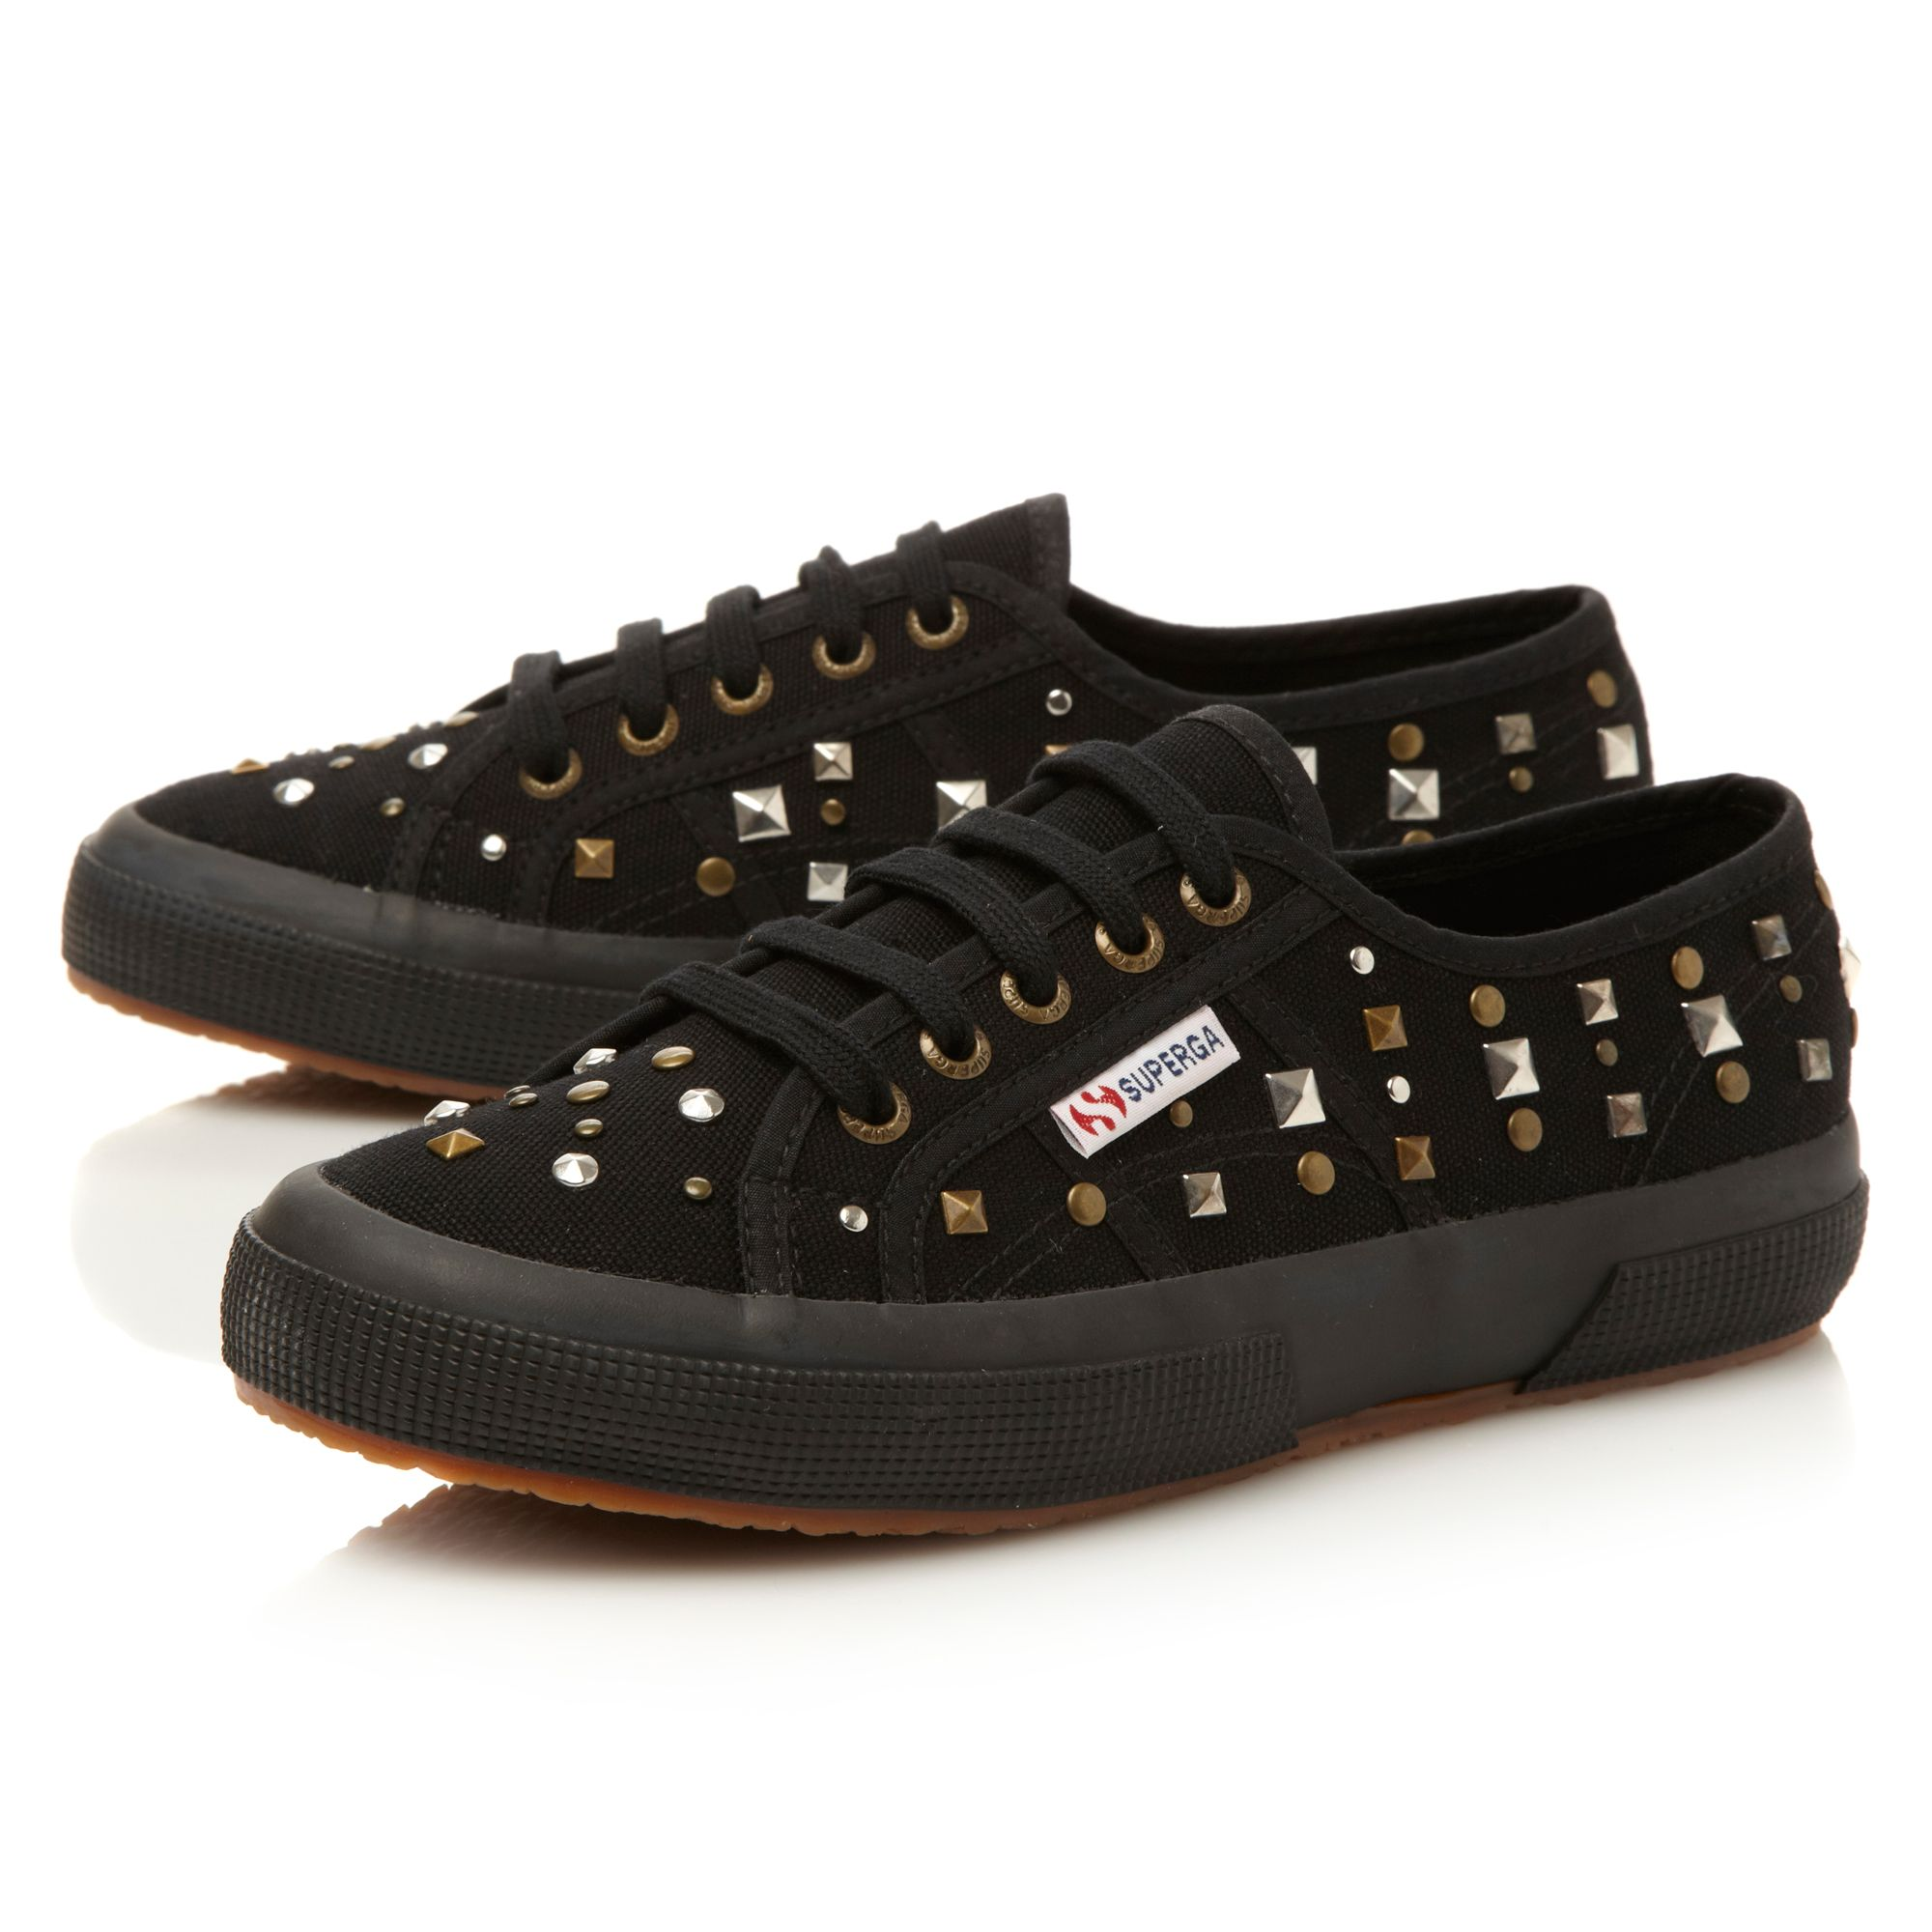 superga studded lace up shoes in black lyst